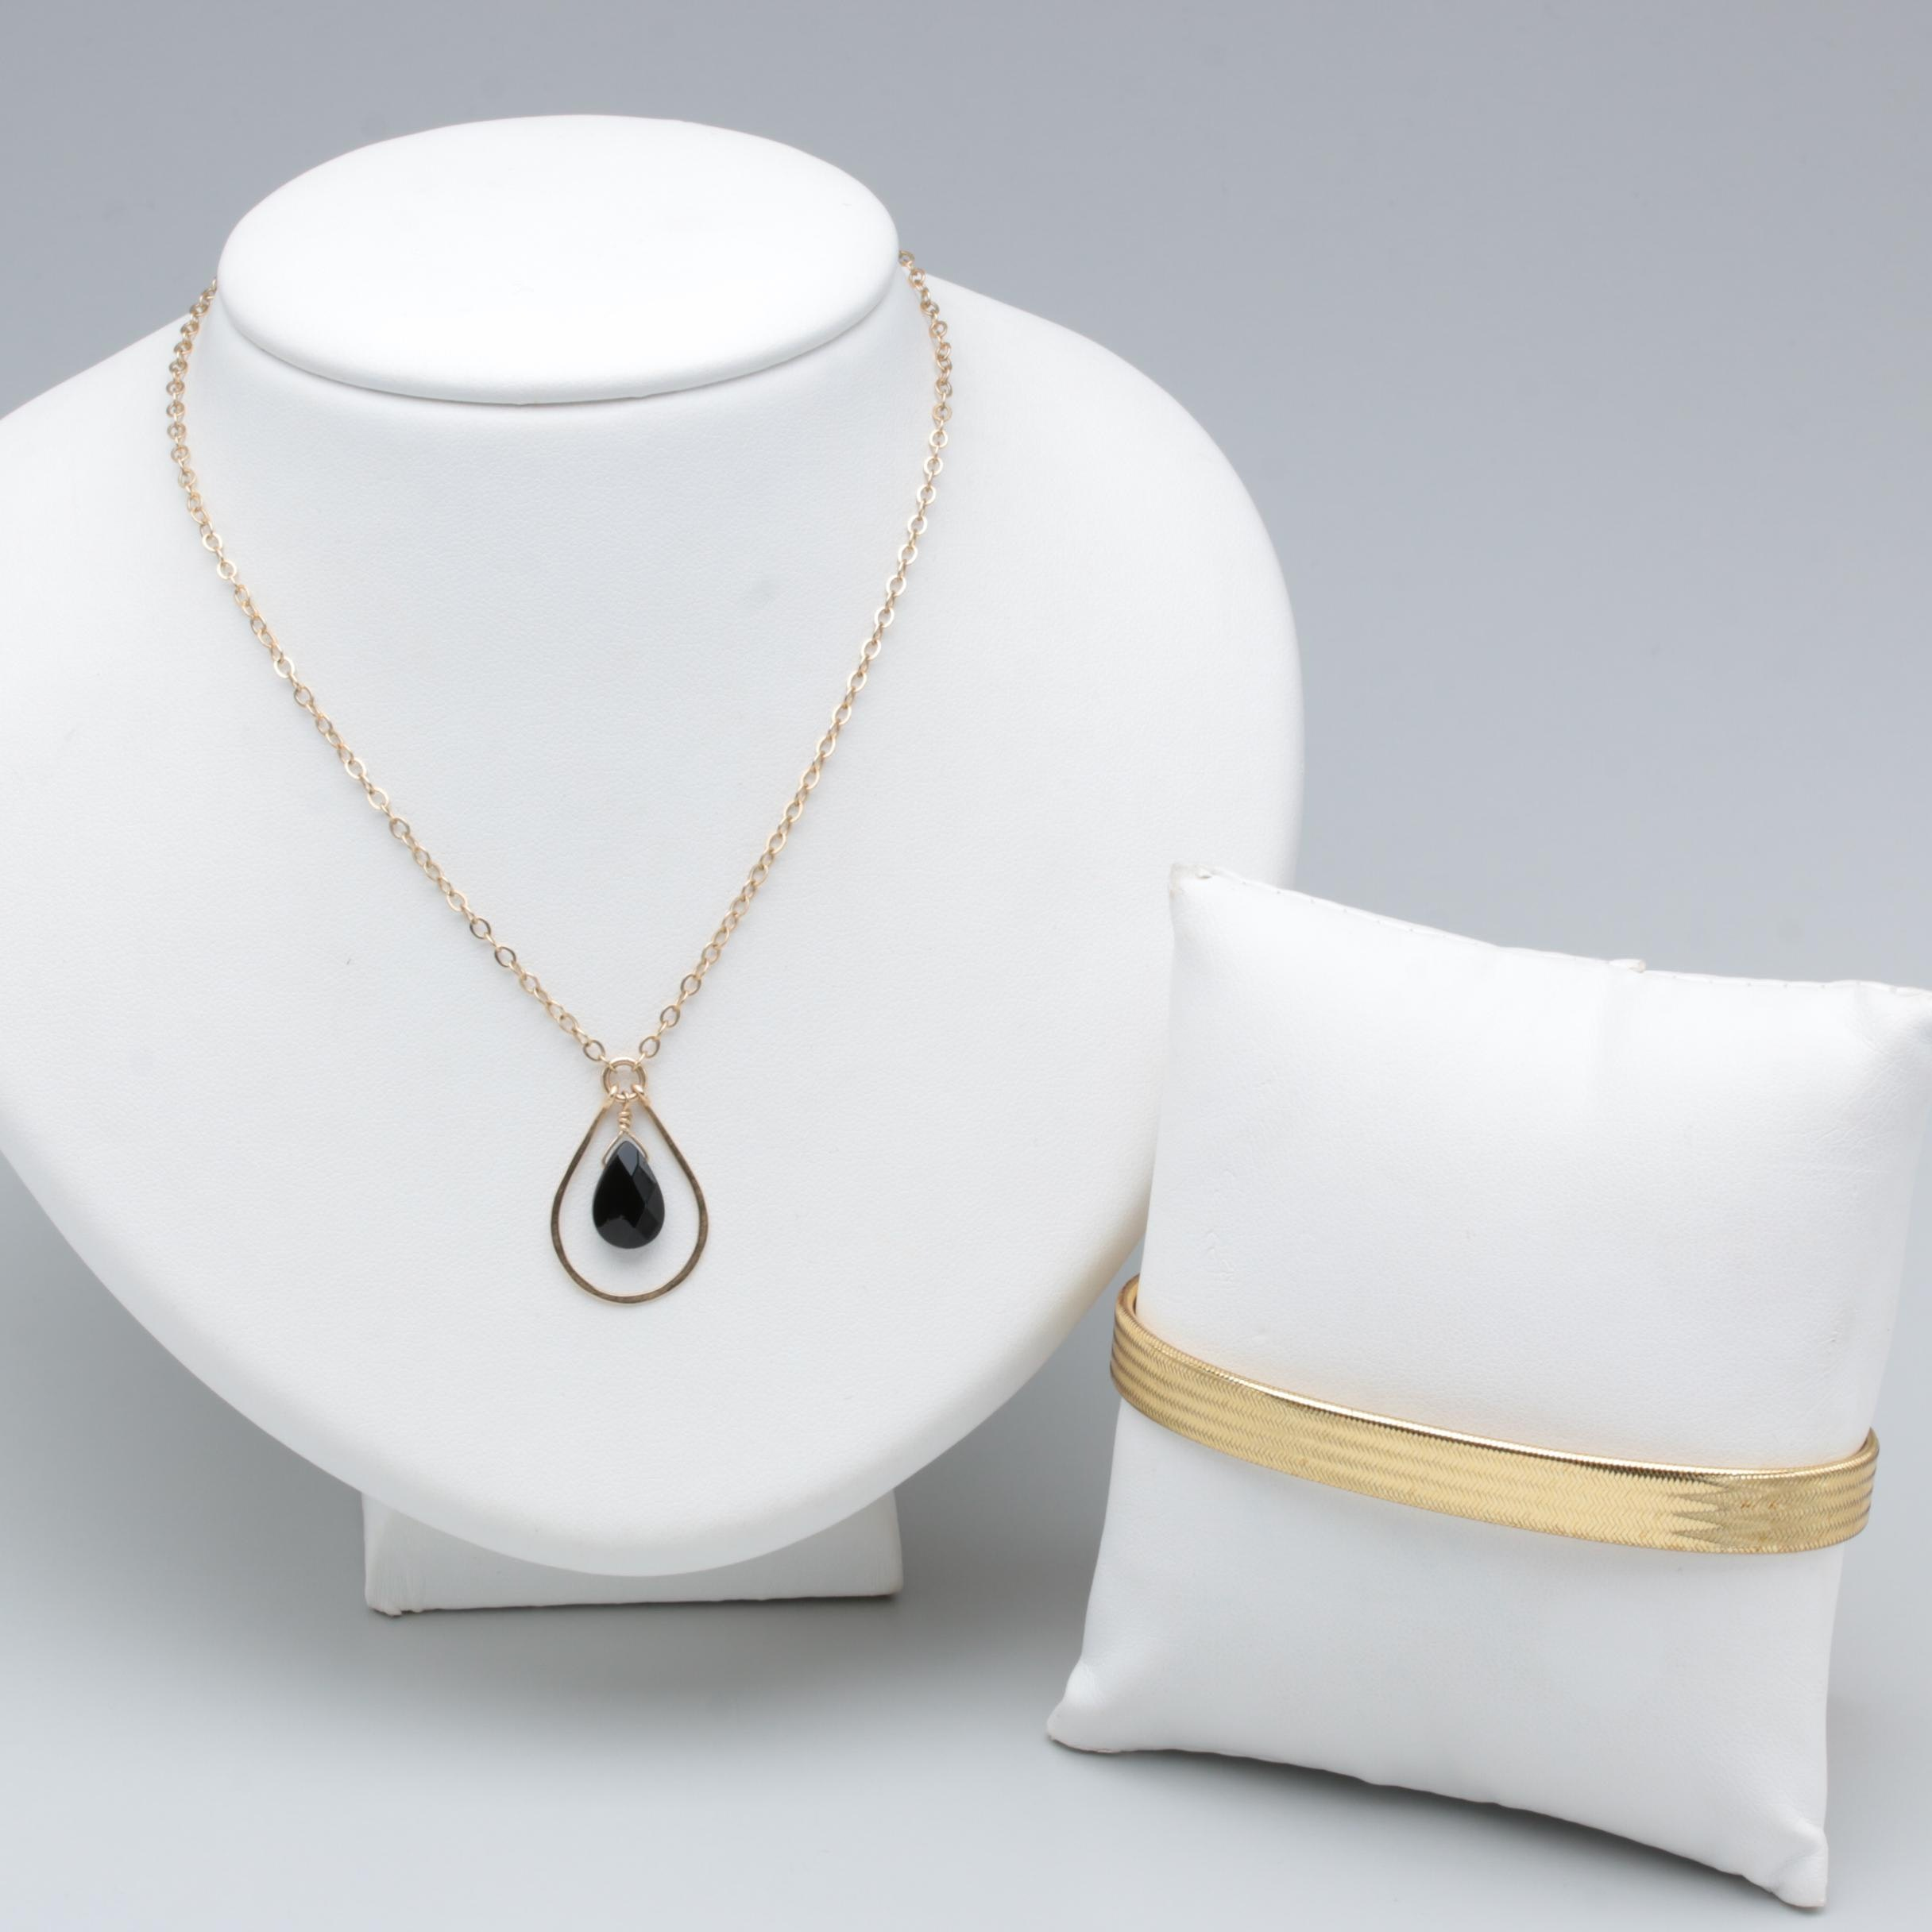 Gold Tone Glass Necklace and Bracelet Including 14K Gold Accent